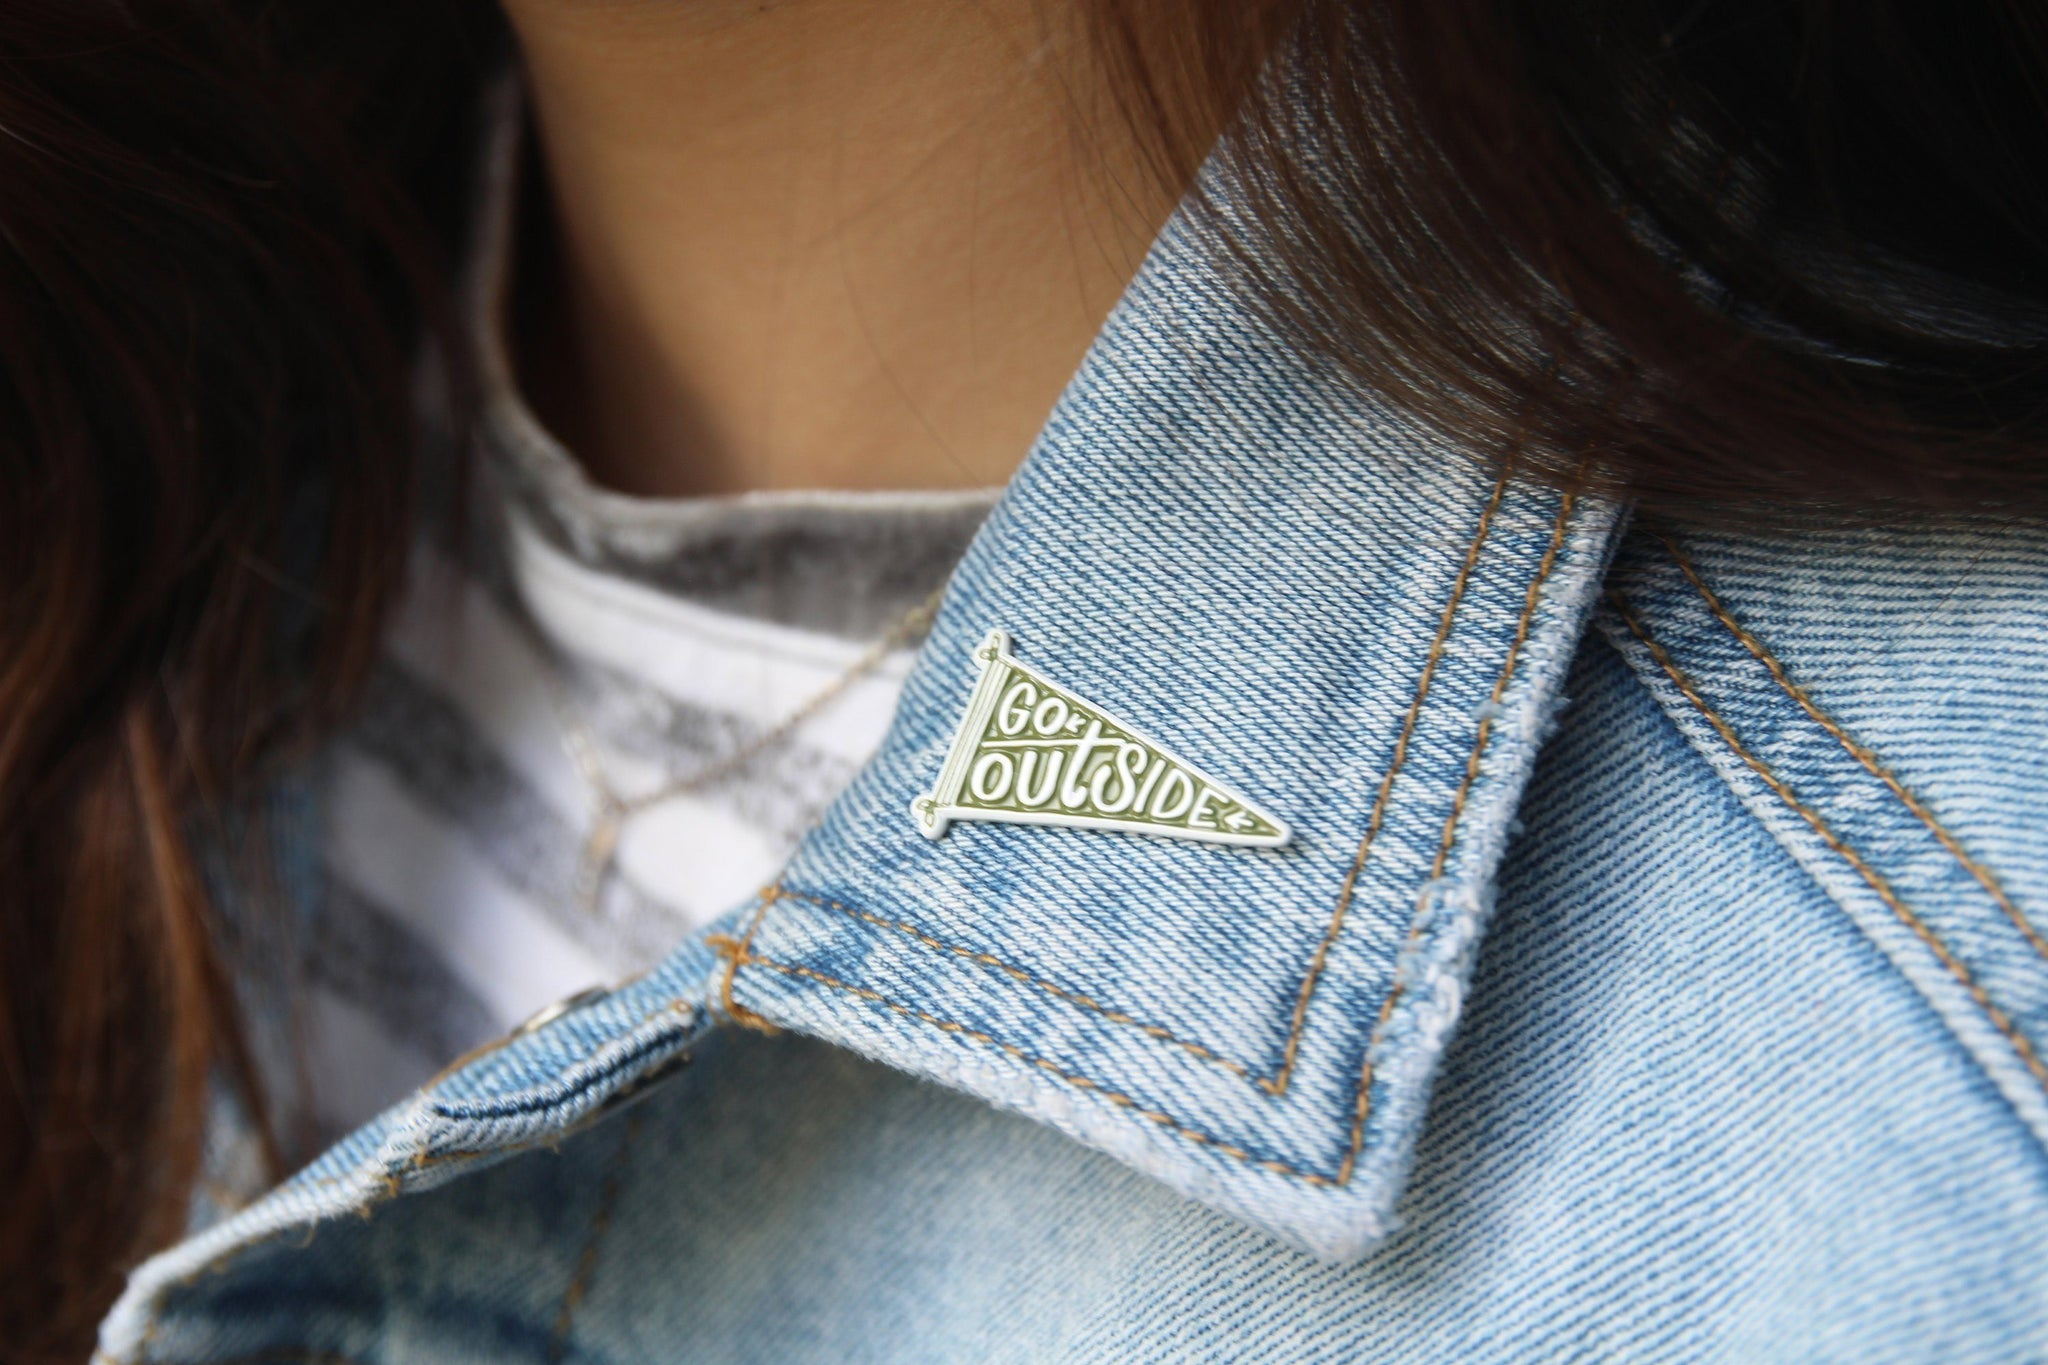 Go Outside Enamel Pin - The Parks Apparel